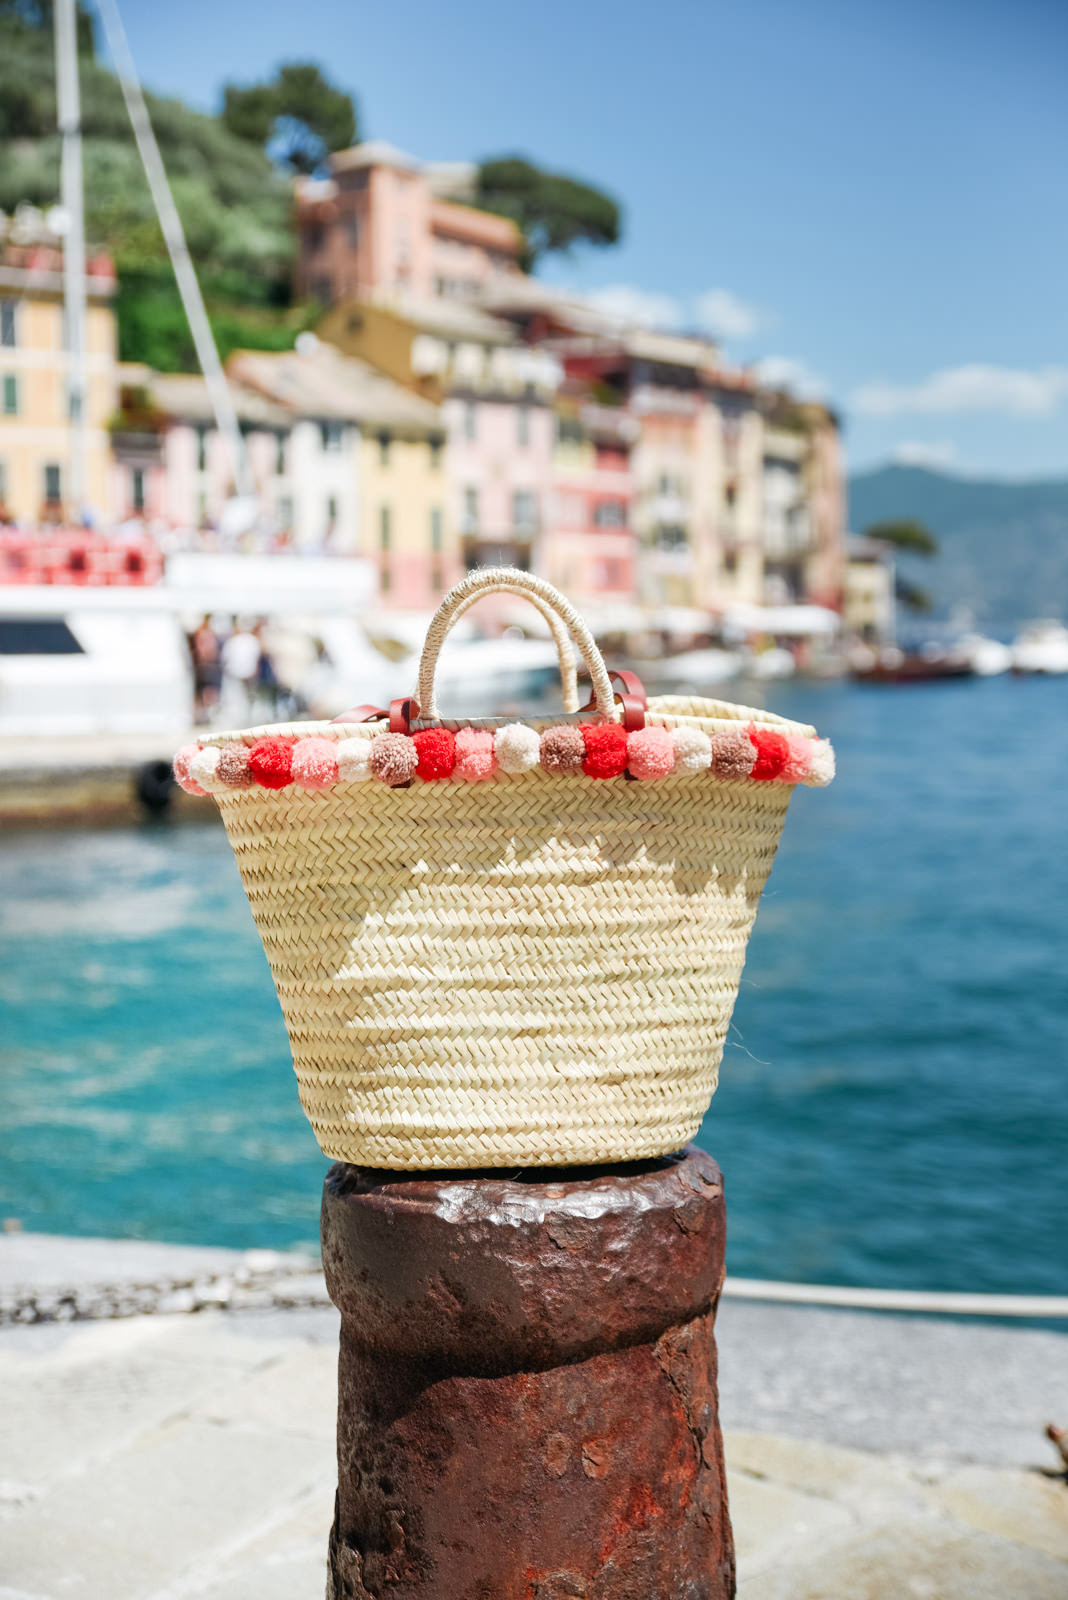 Blog-Mode-And-The-City-Lifestyle-Italie-Portofino-Belmond-Hotel-14